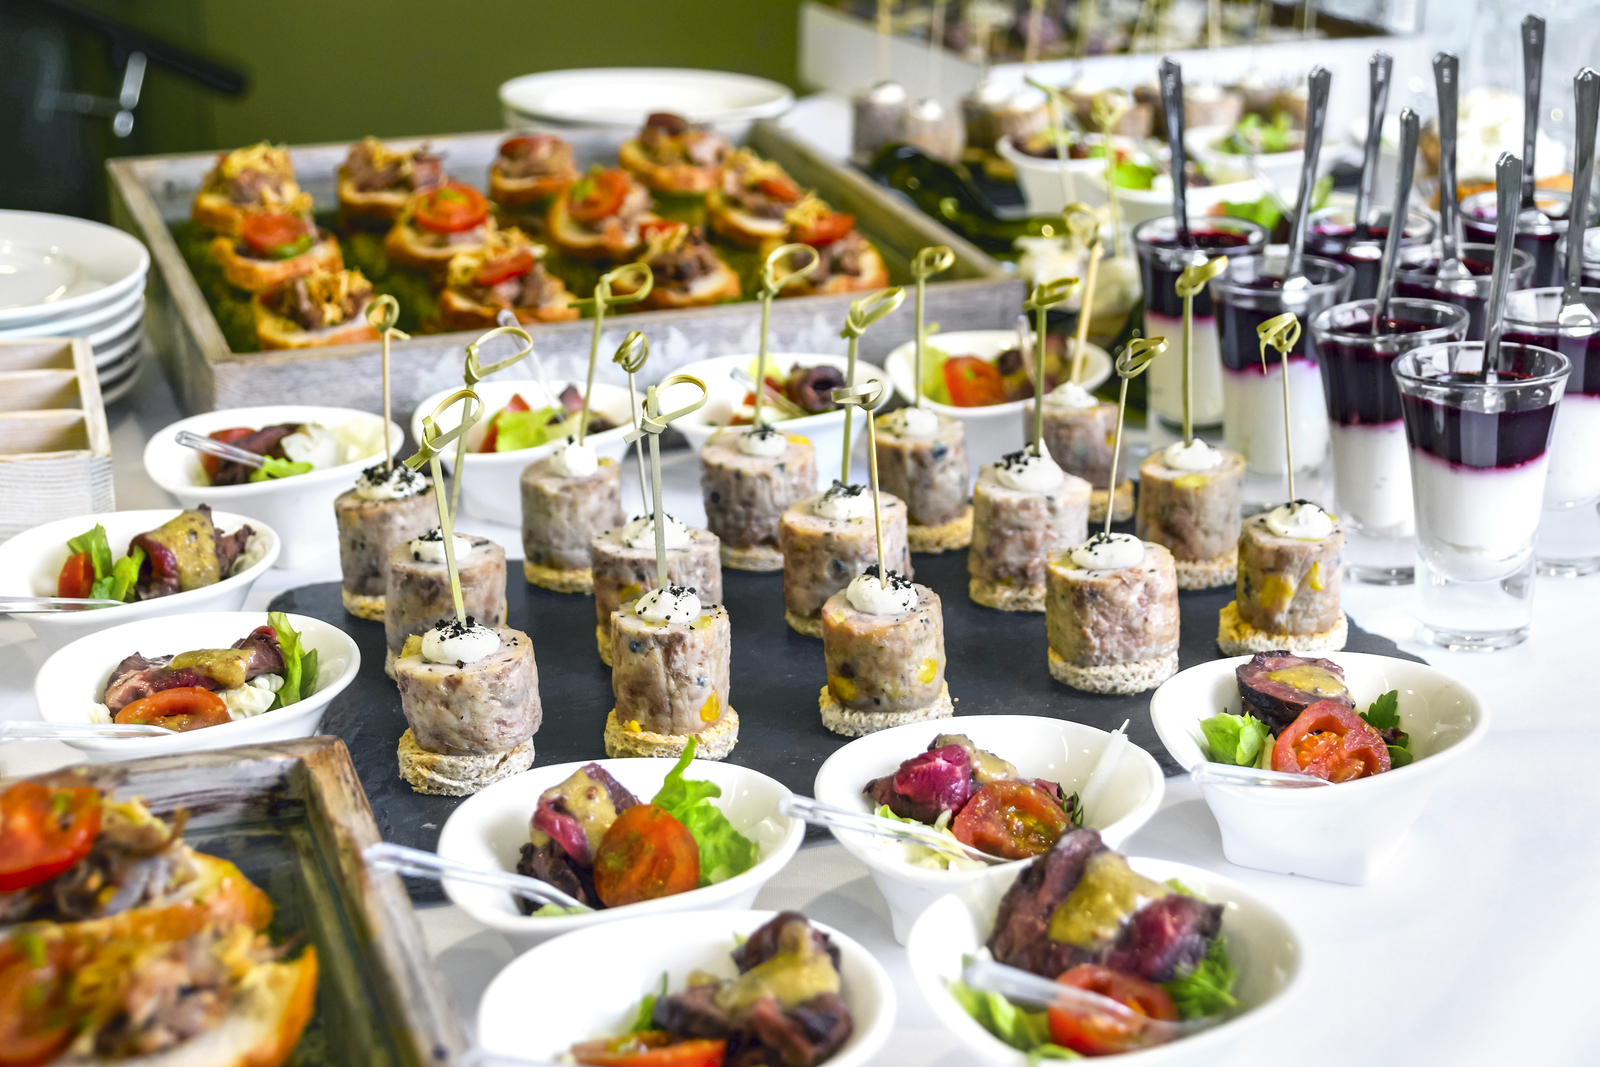 Catering Service Concept: Assorted Snacks Served at a Business Event, Hotel, Birthday or Wedding Celebration